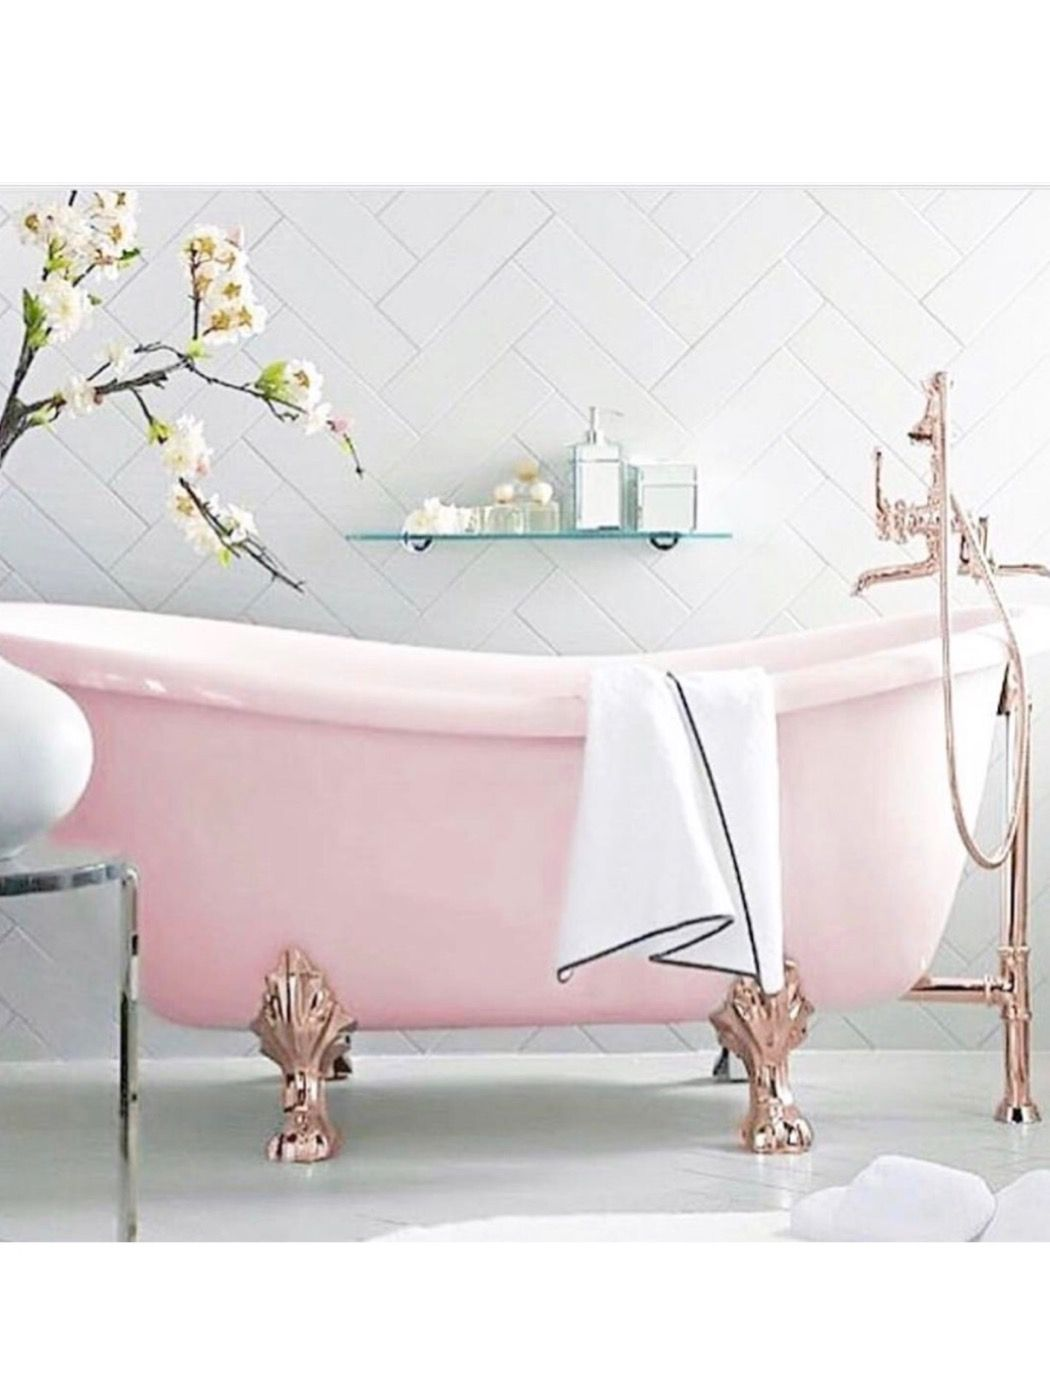 Pink and rose gold claw foot tub Dreamy | Bathroom Inspo | Pinterest ...